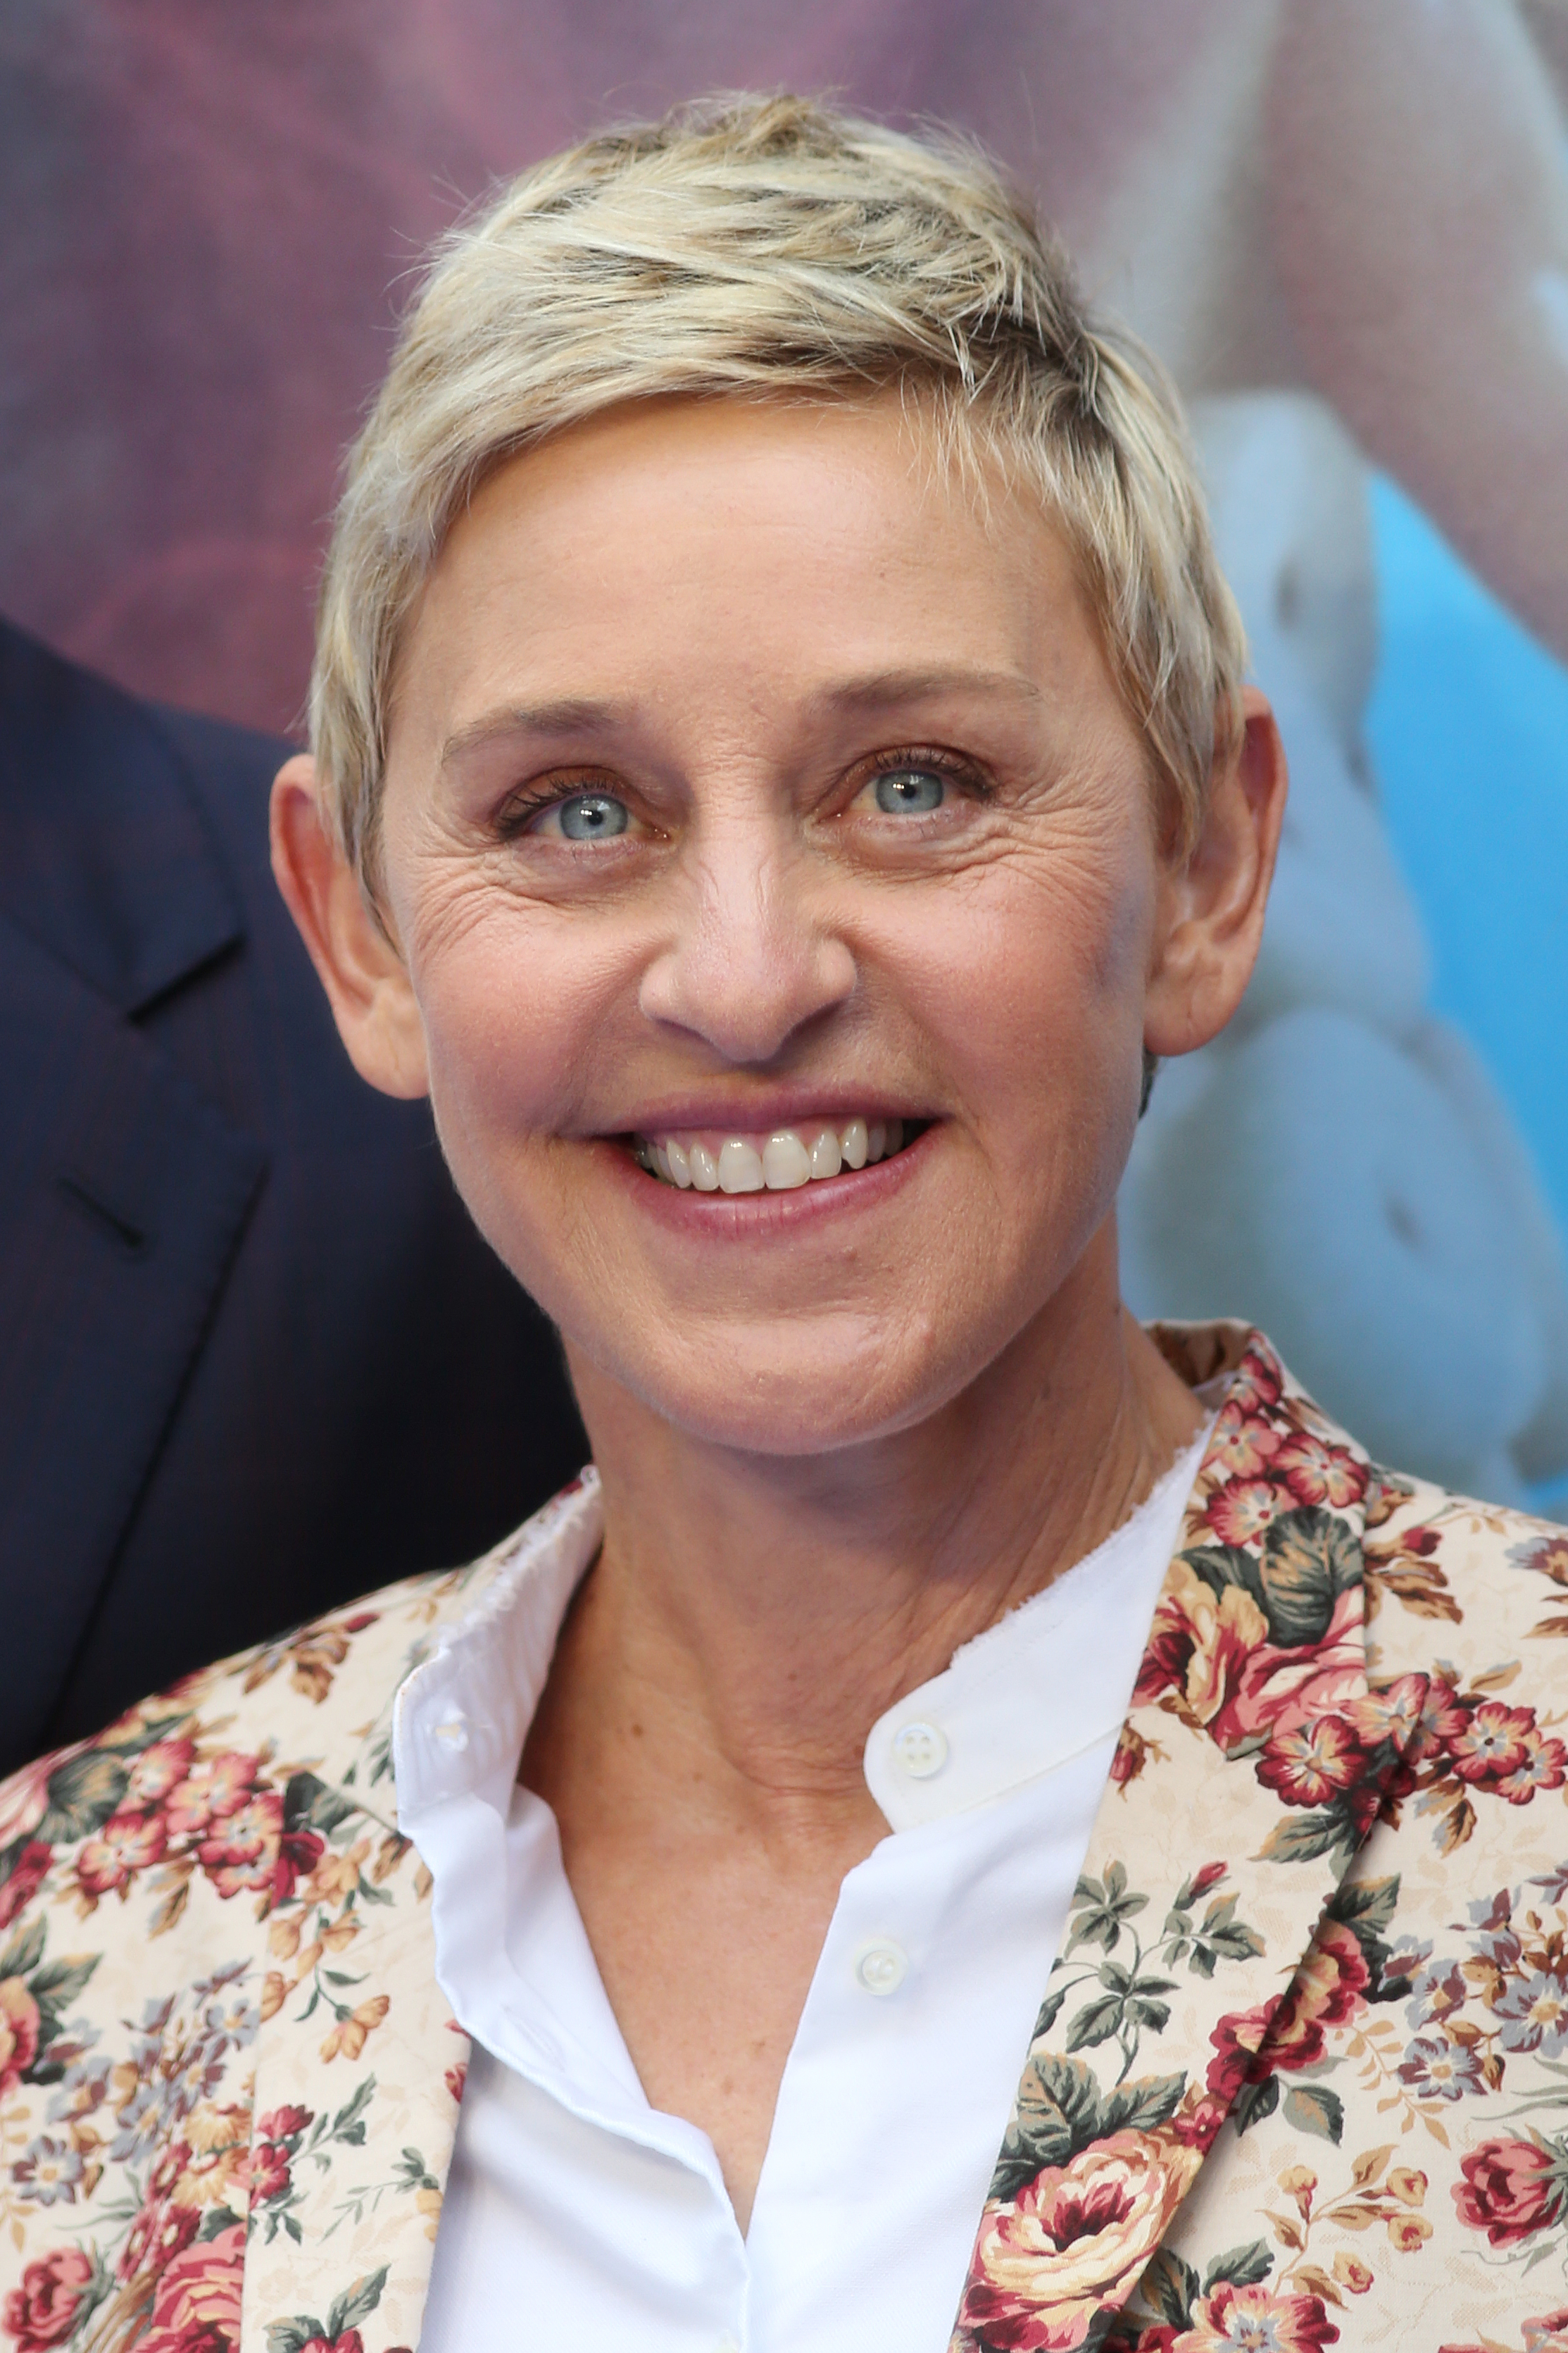 European premiere of 'Finding Dory' - Arrivals                                    Featuring: Ellen DeGeneres                  Where: London, United Kingdom                  When: 10 Jul 2016                  Credit: Lia Toby/WENN.com